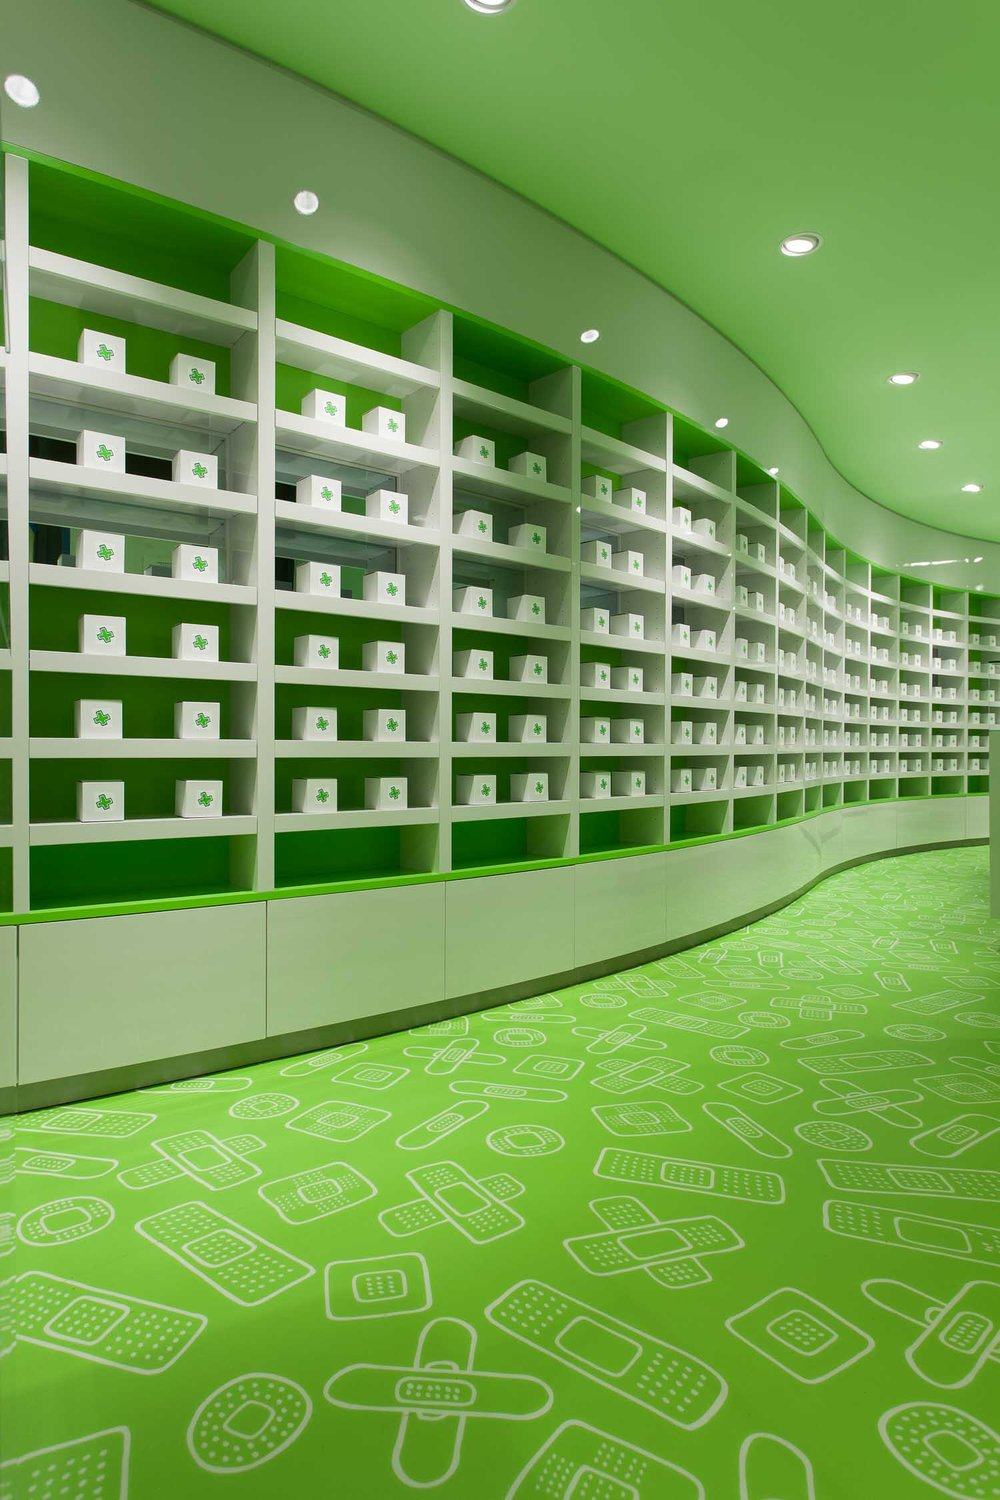 View of the interior display design for OTC and pharmacy products